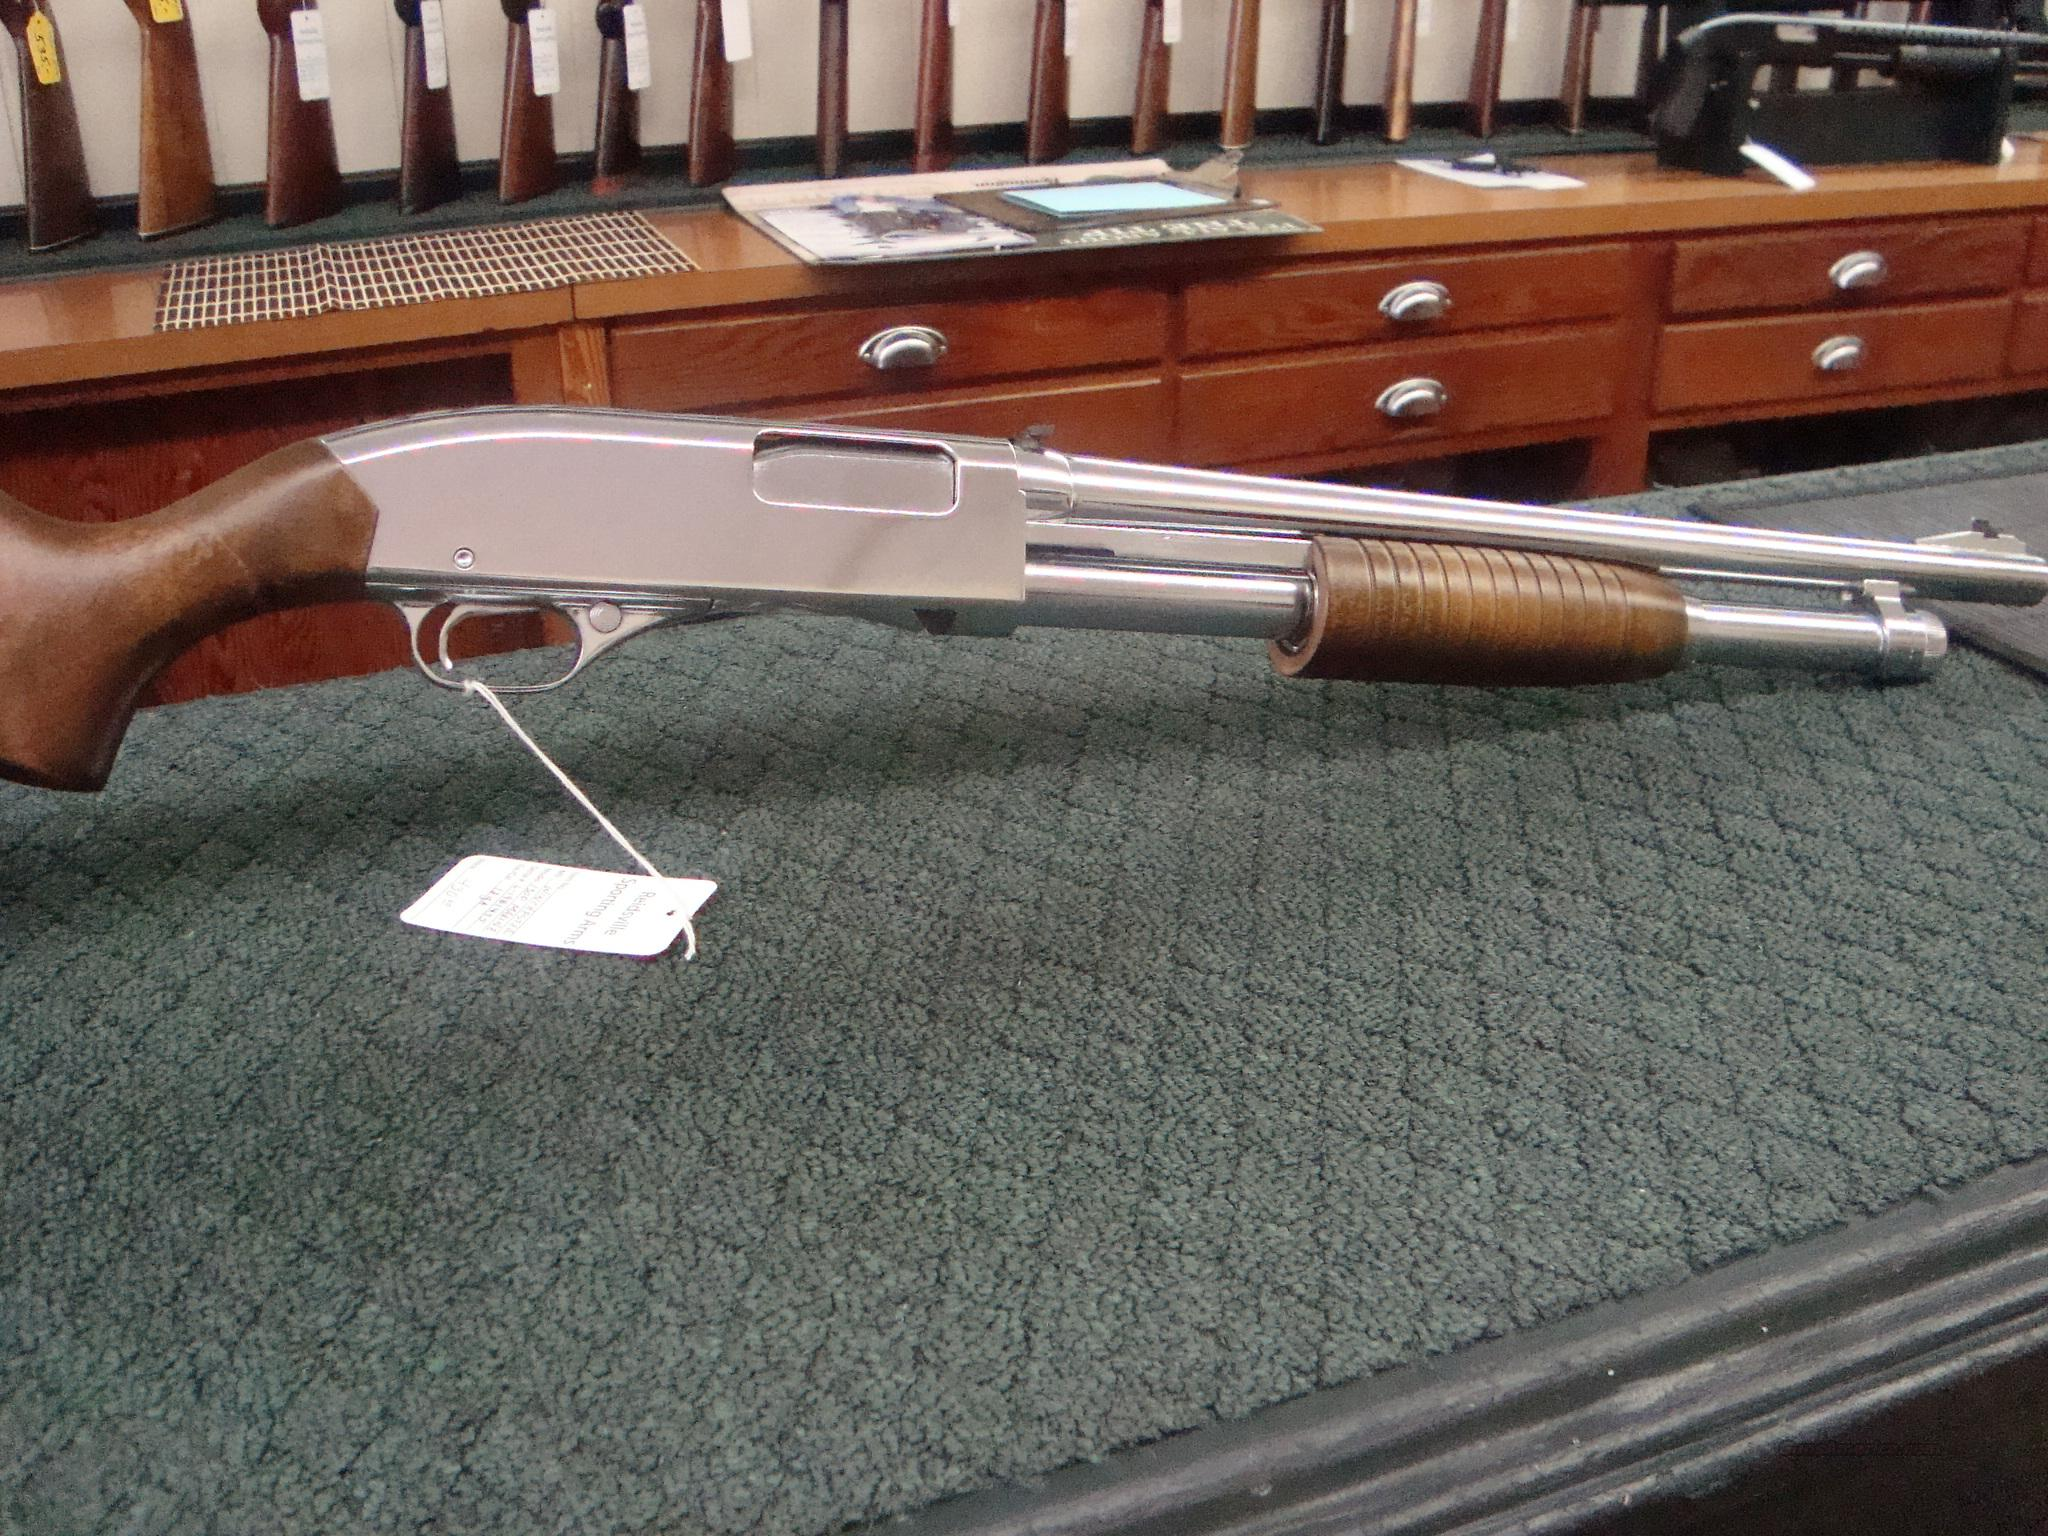 Winchester model 1300 Marine Grade  Guns > Shotguns > Winchester Shotguns - Modern > Pump Action > Defense/Tactical